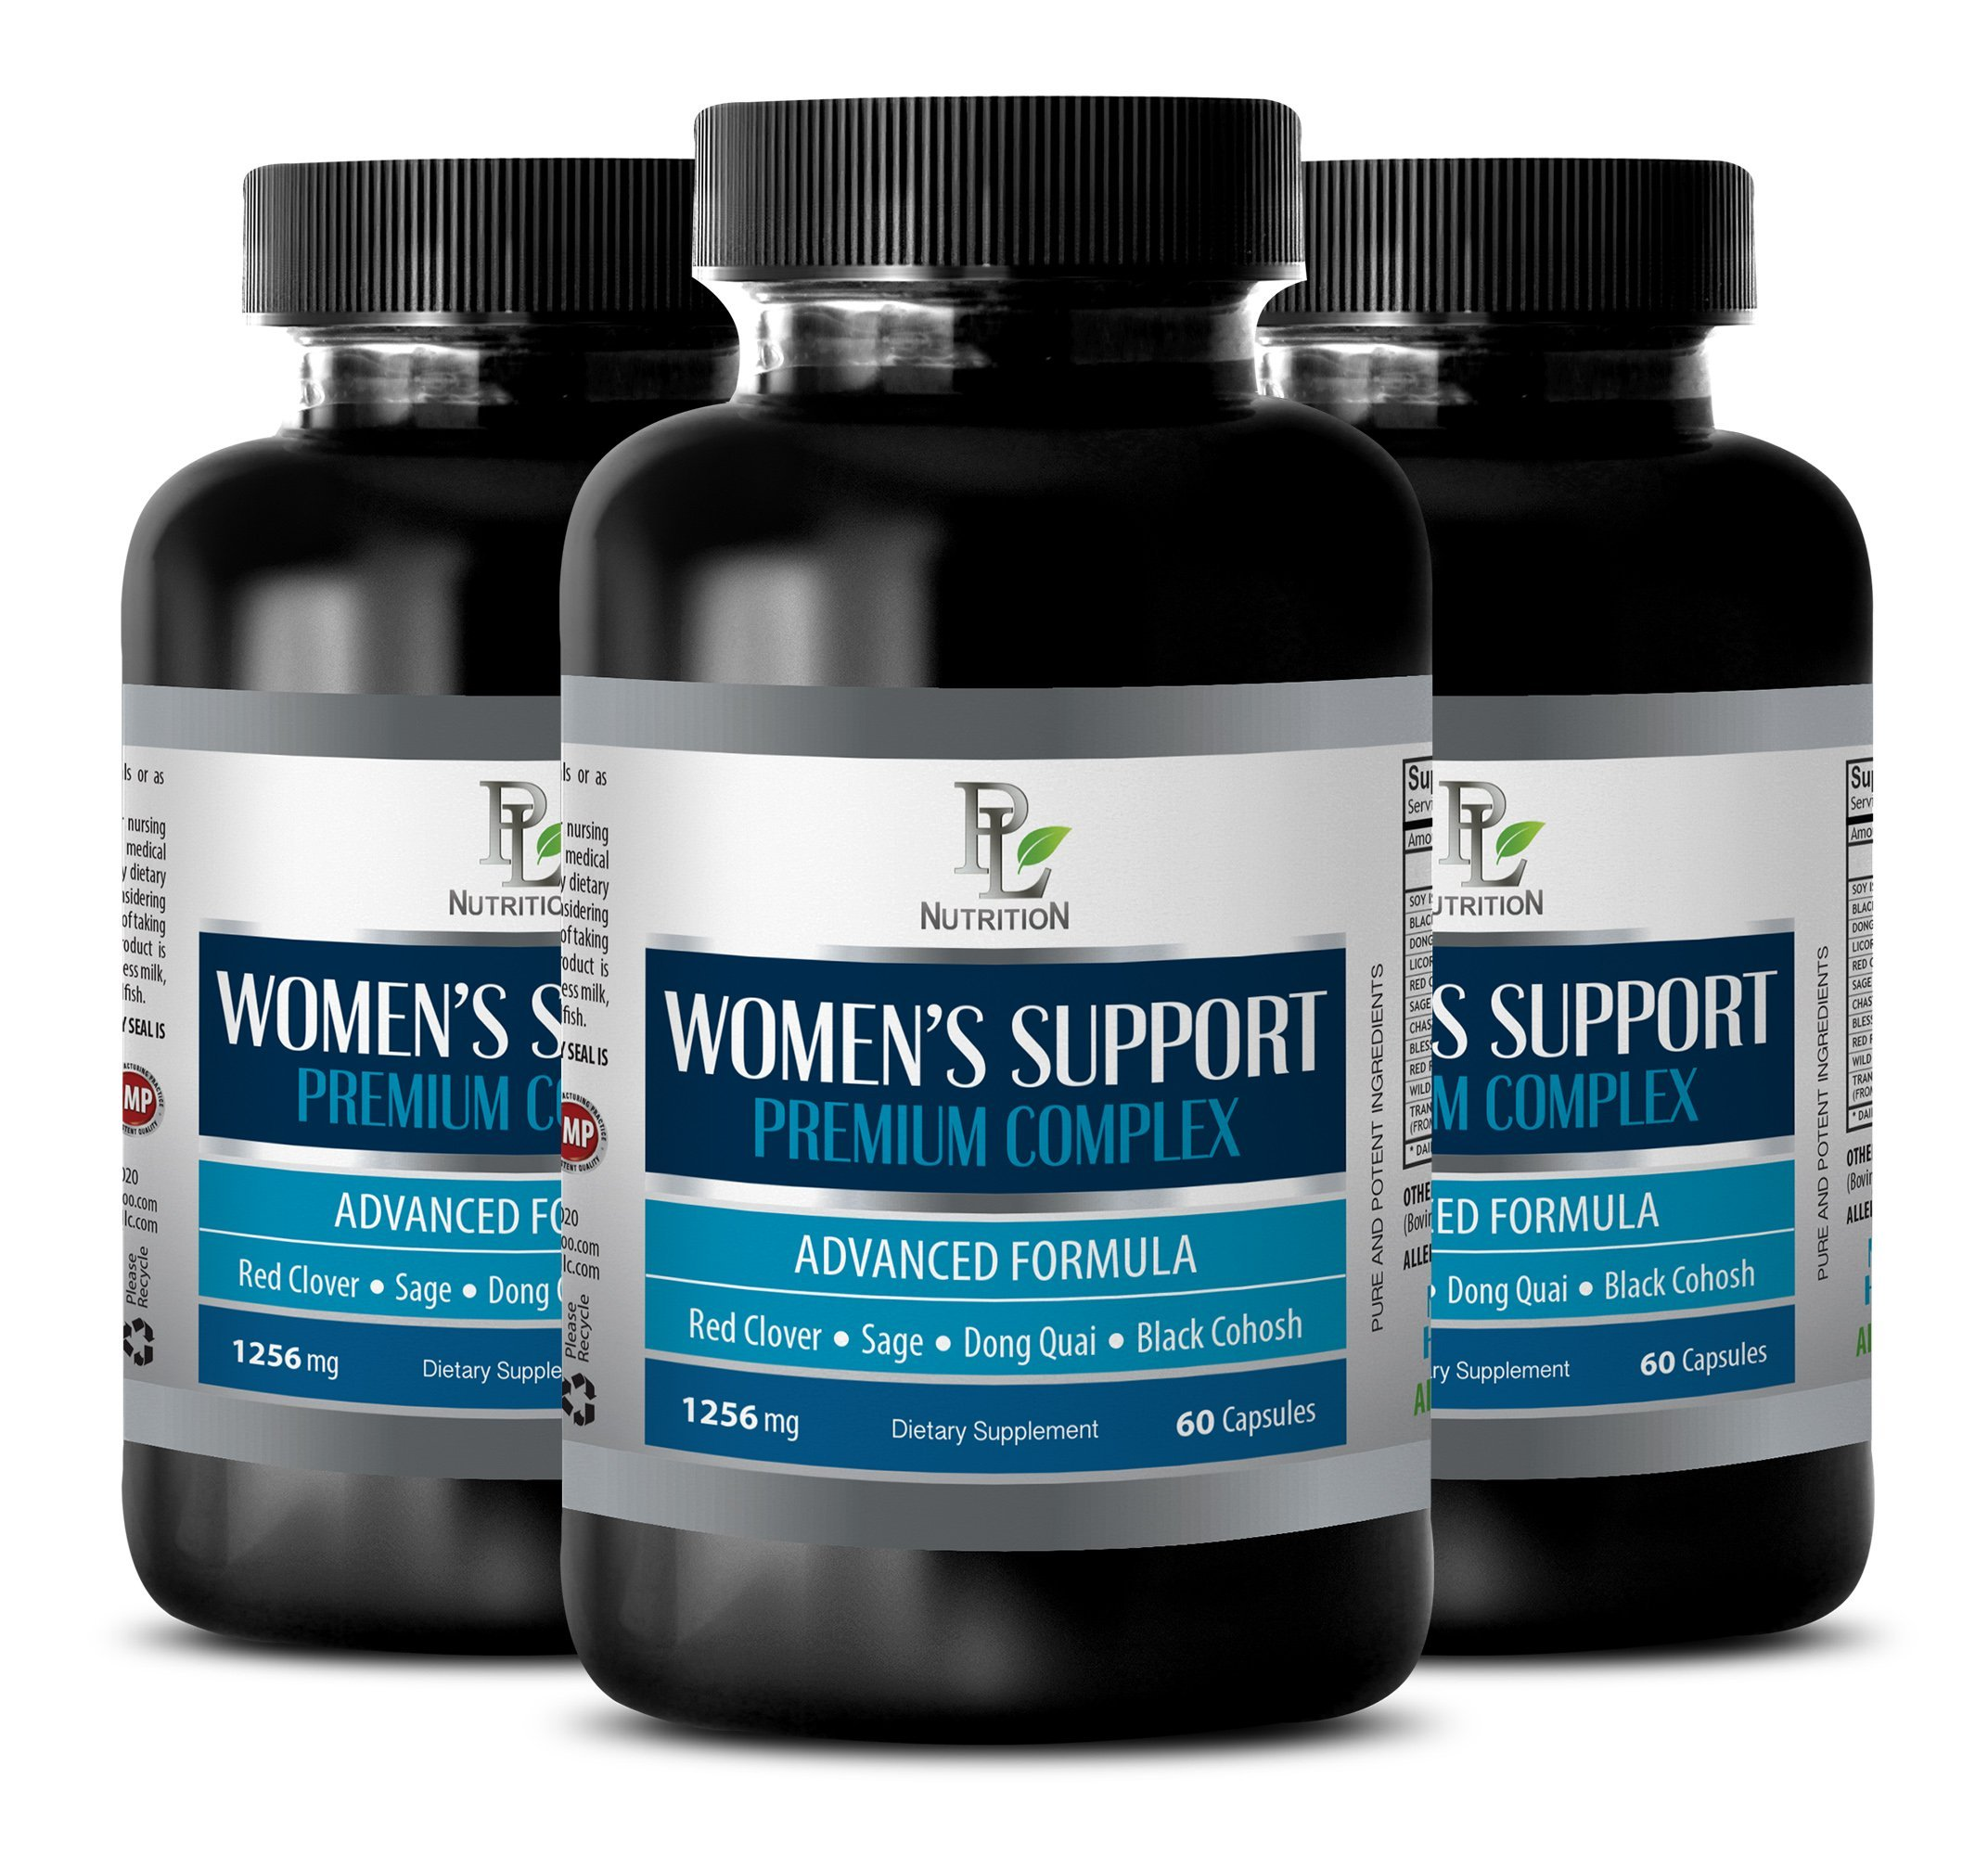 Sleeping aid - Women's Support Premium Complex - Advanced Formula - Female Sexuality - 3 Bottles (180 Capsules)